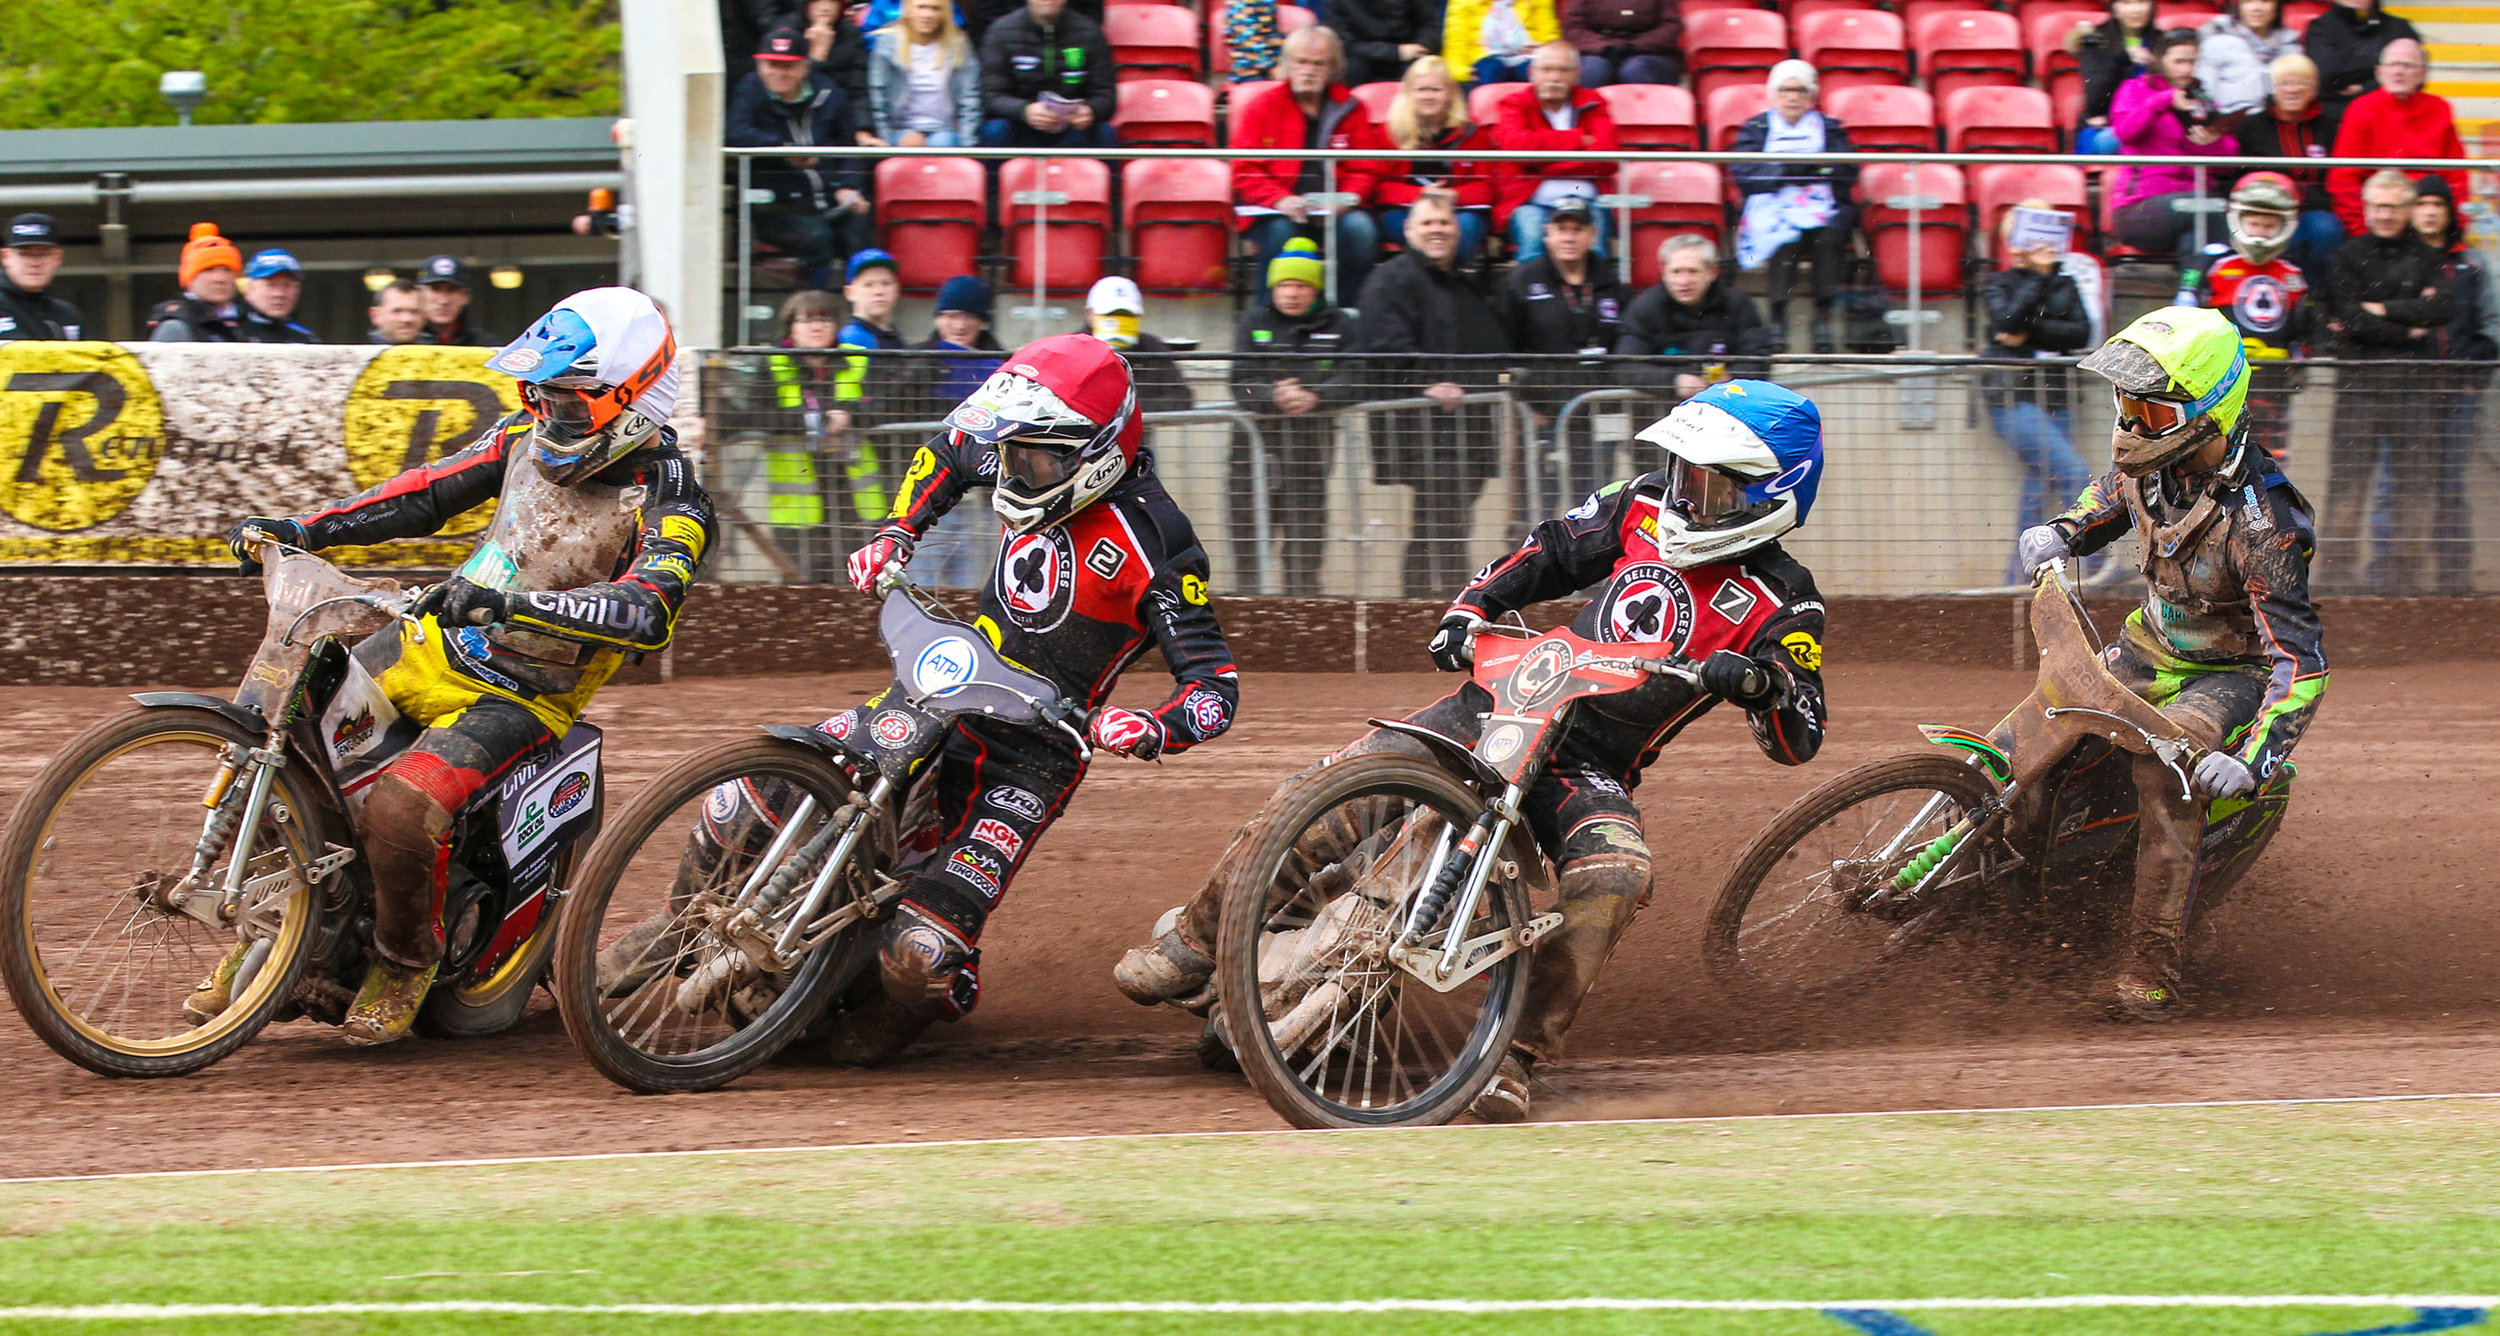 Poole forced the Rentruck Aces into a 45-45 draw in their last encounter in Manchester